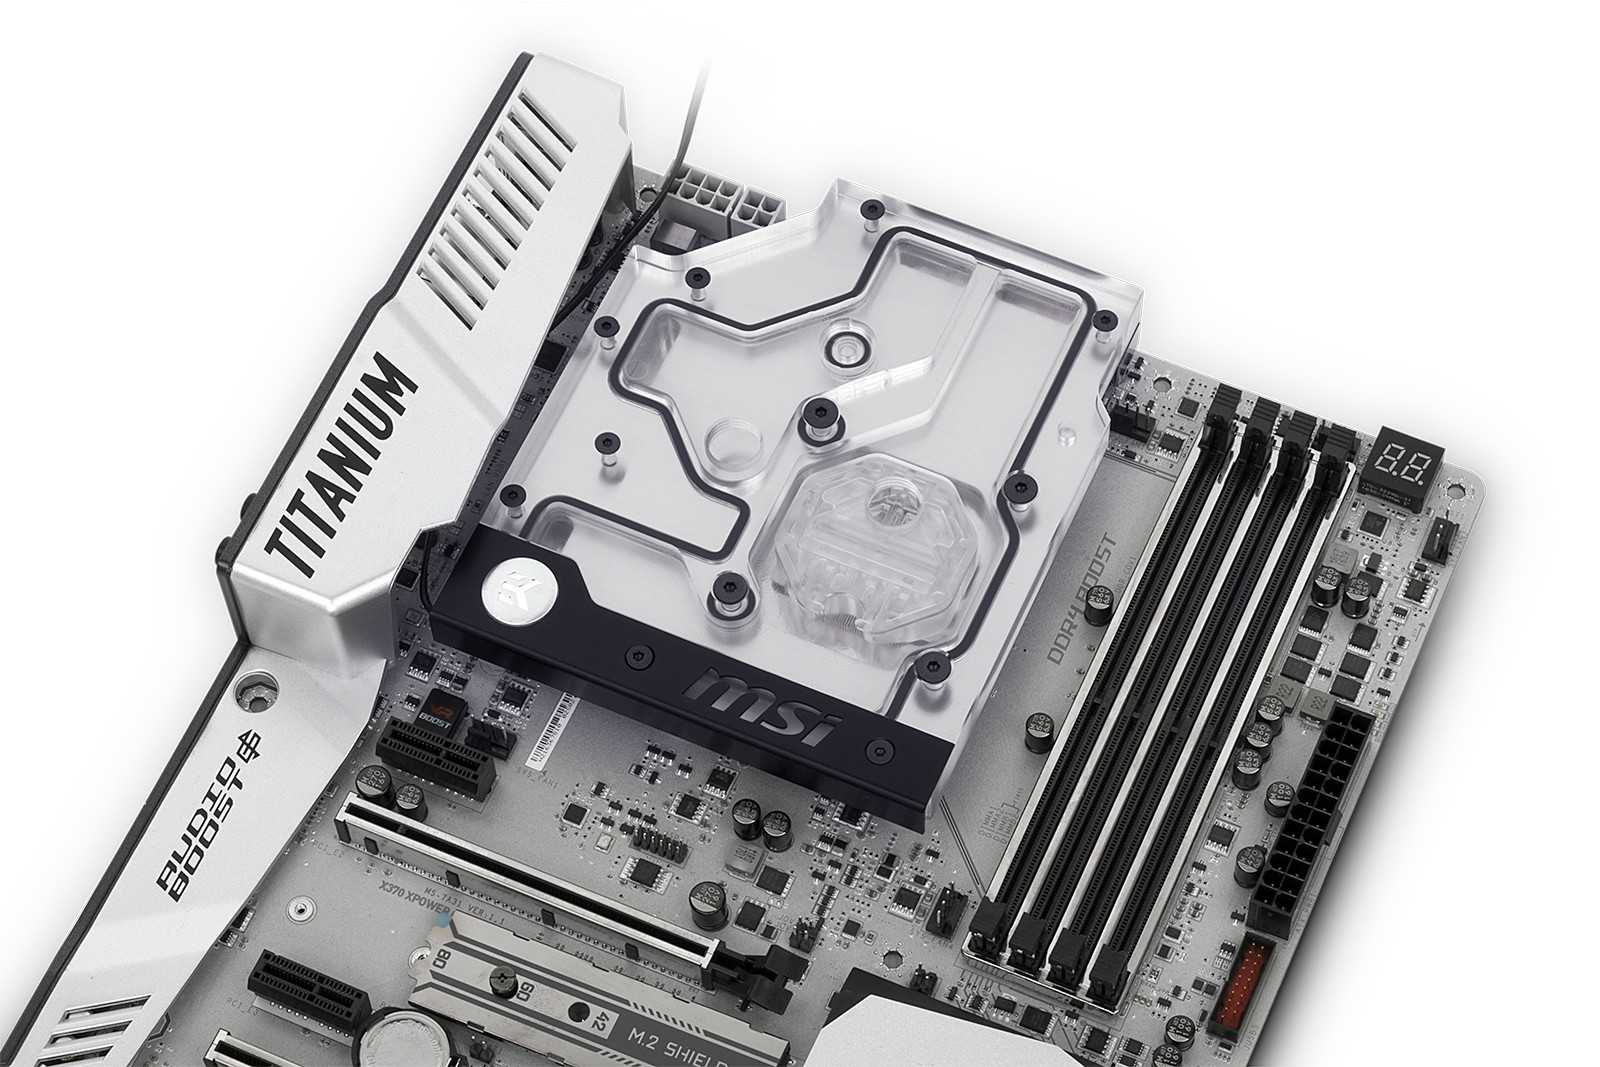 EK announce their new AM4 monoblock for MSI's X370 XPOWER motherboard